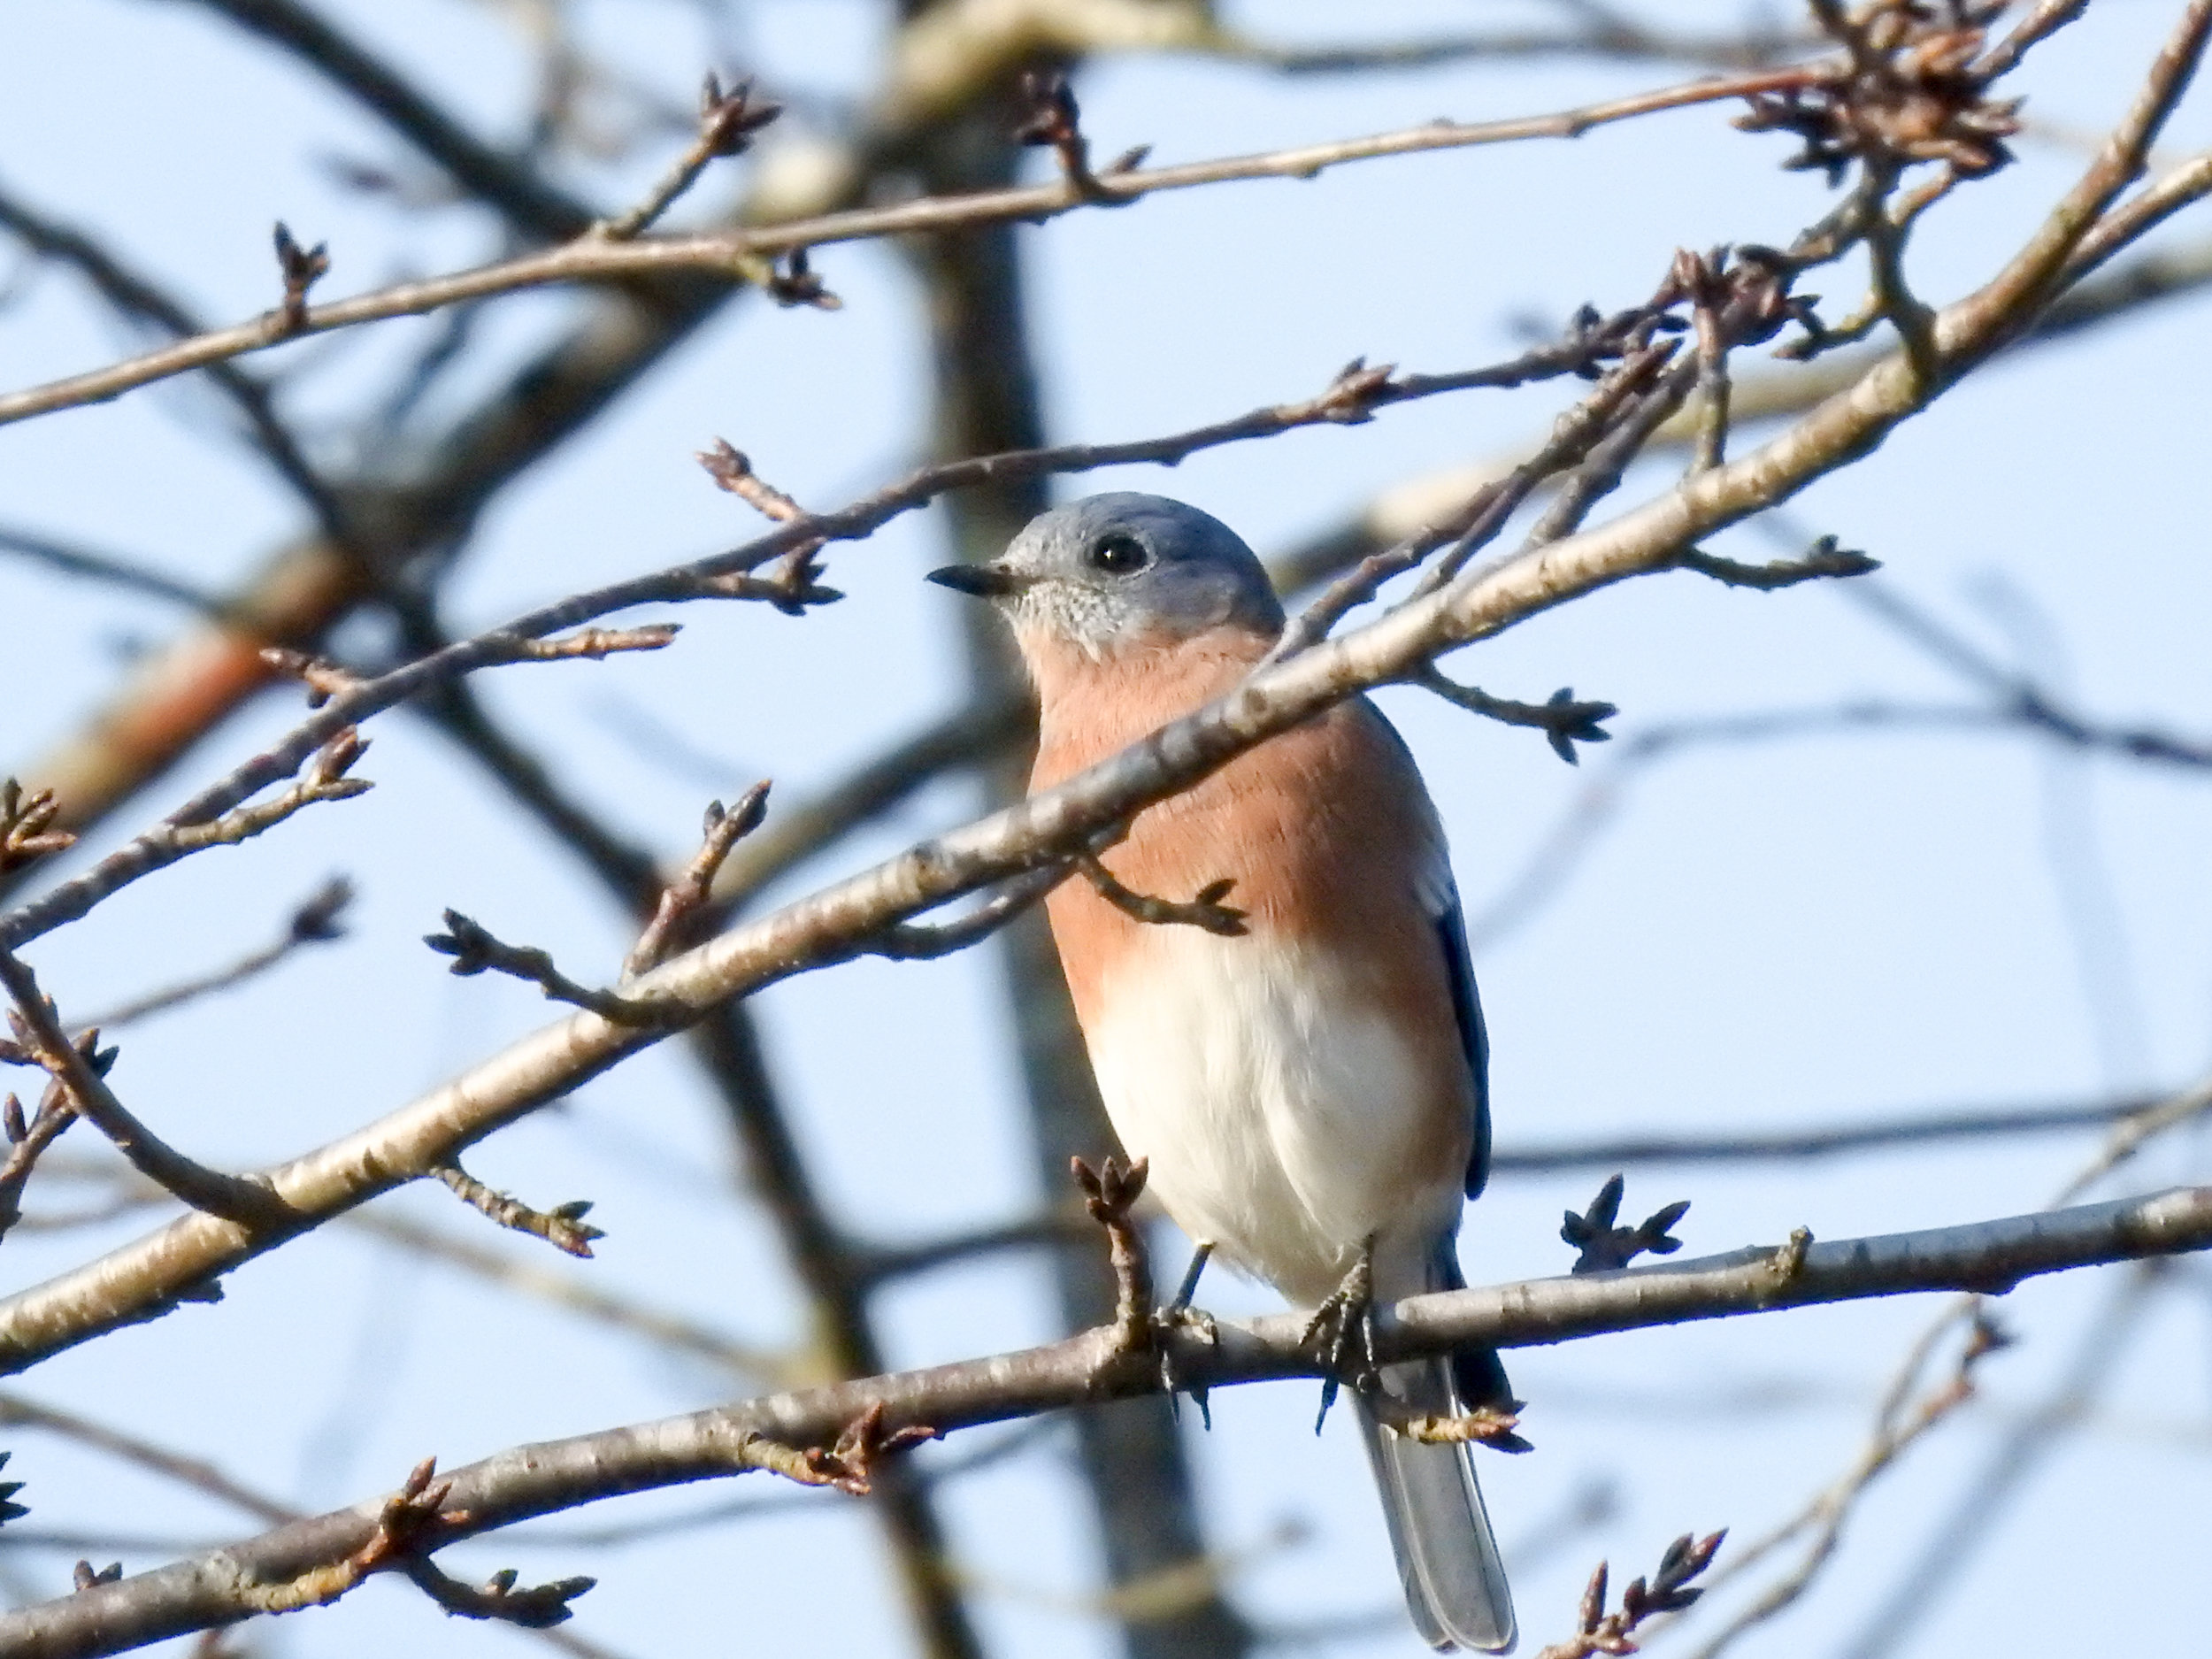 Eastern Bluebird, September 23, 2017